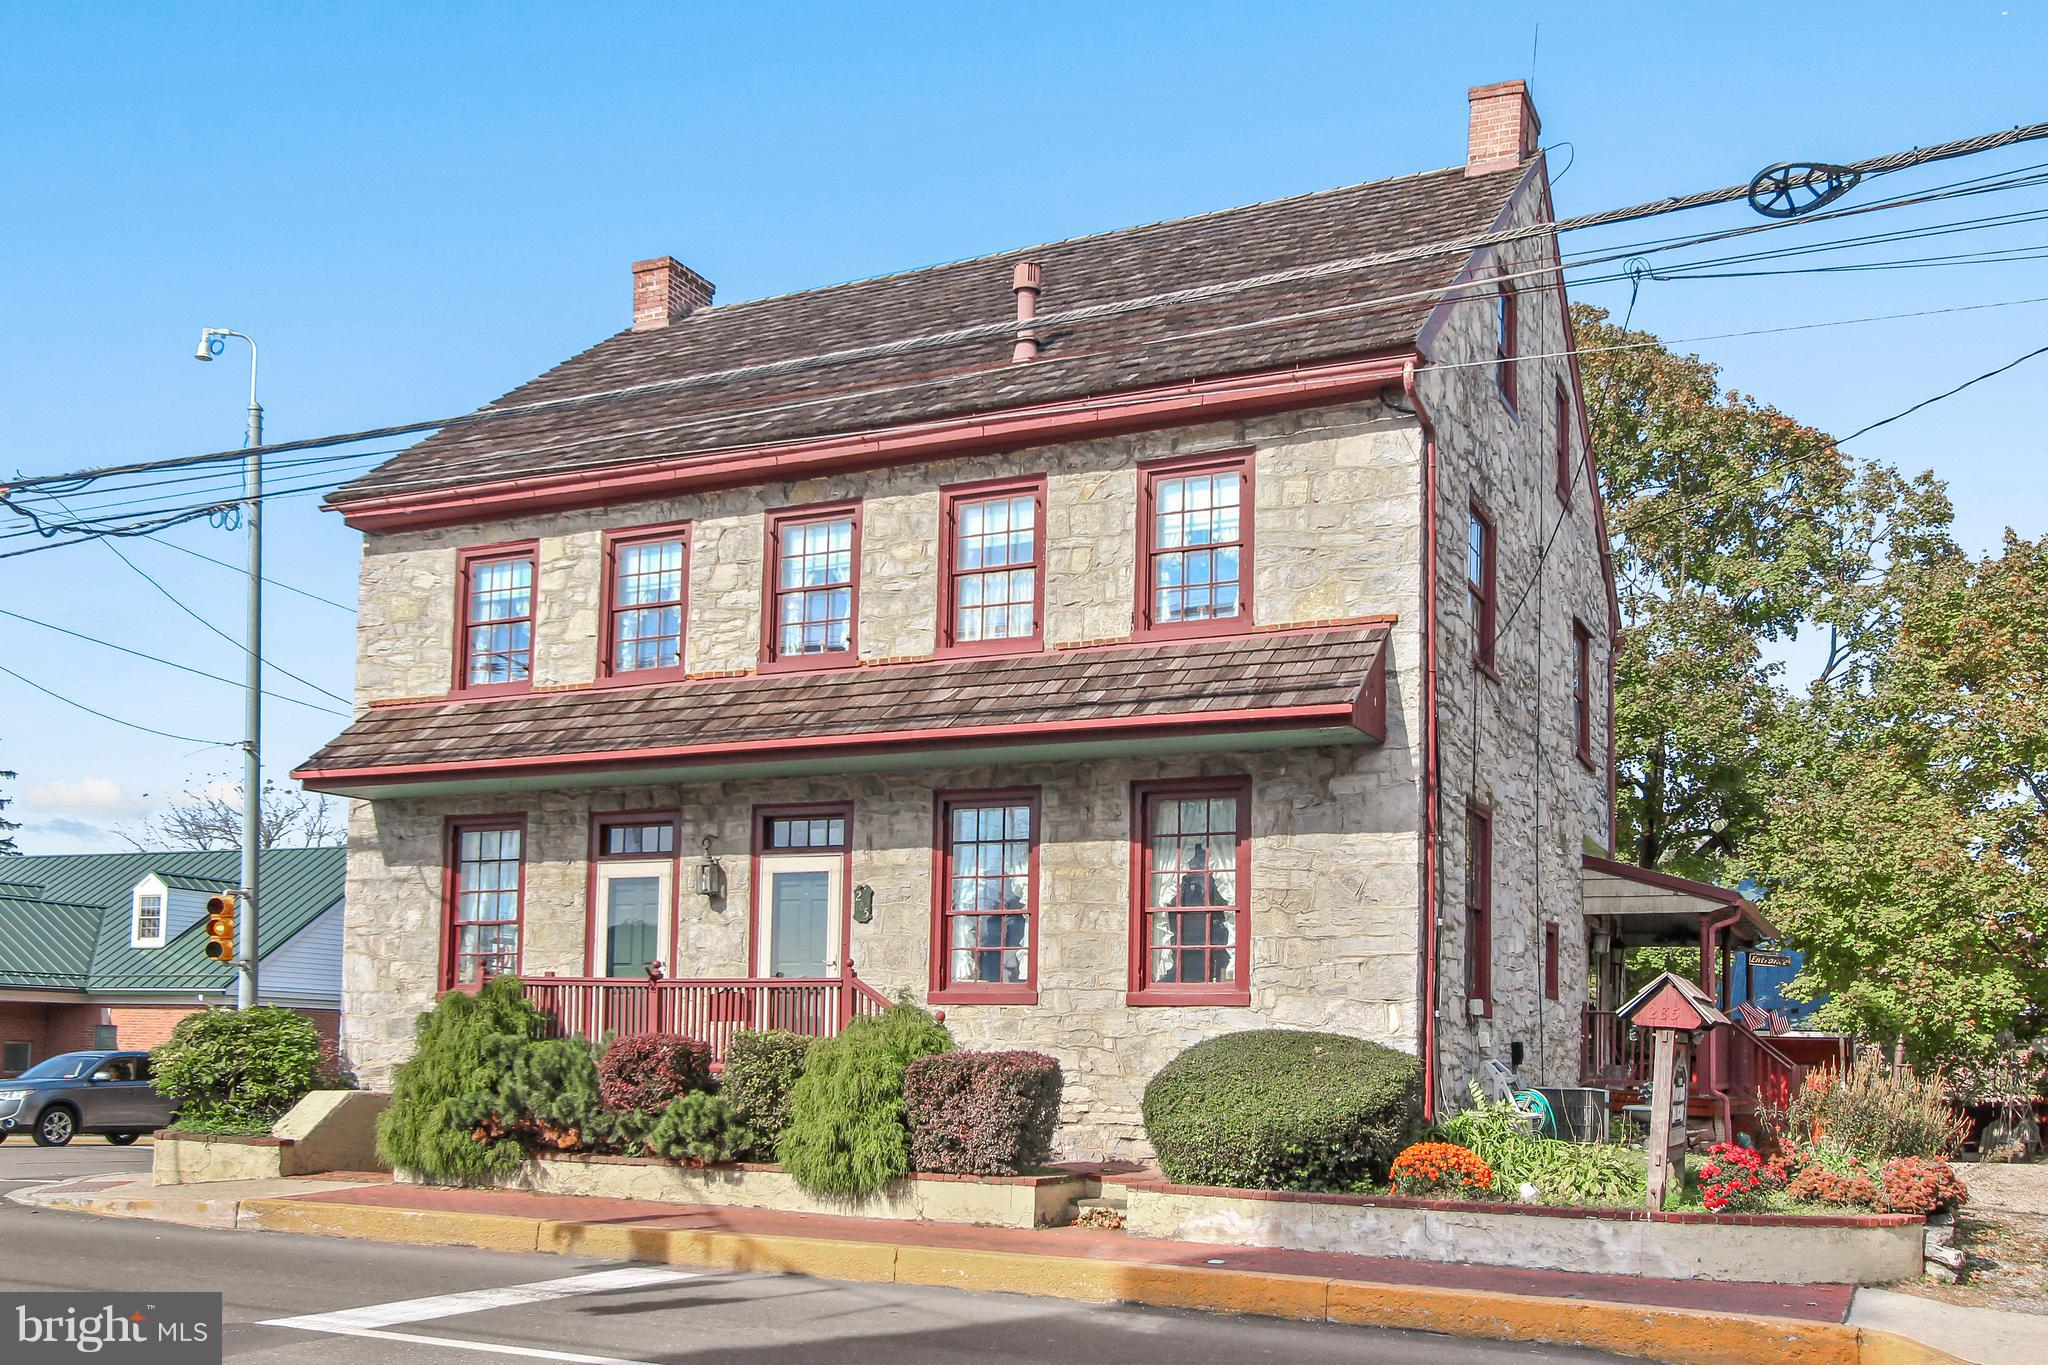 285 W MAIN STREET, NEW HOLLAND, PA 17557